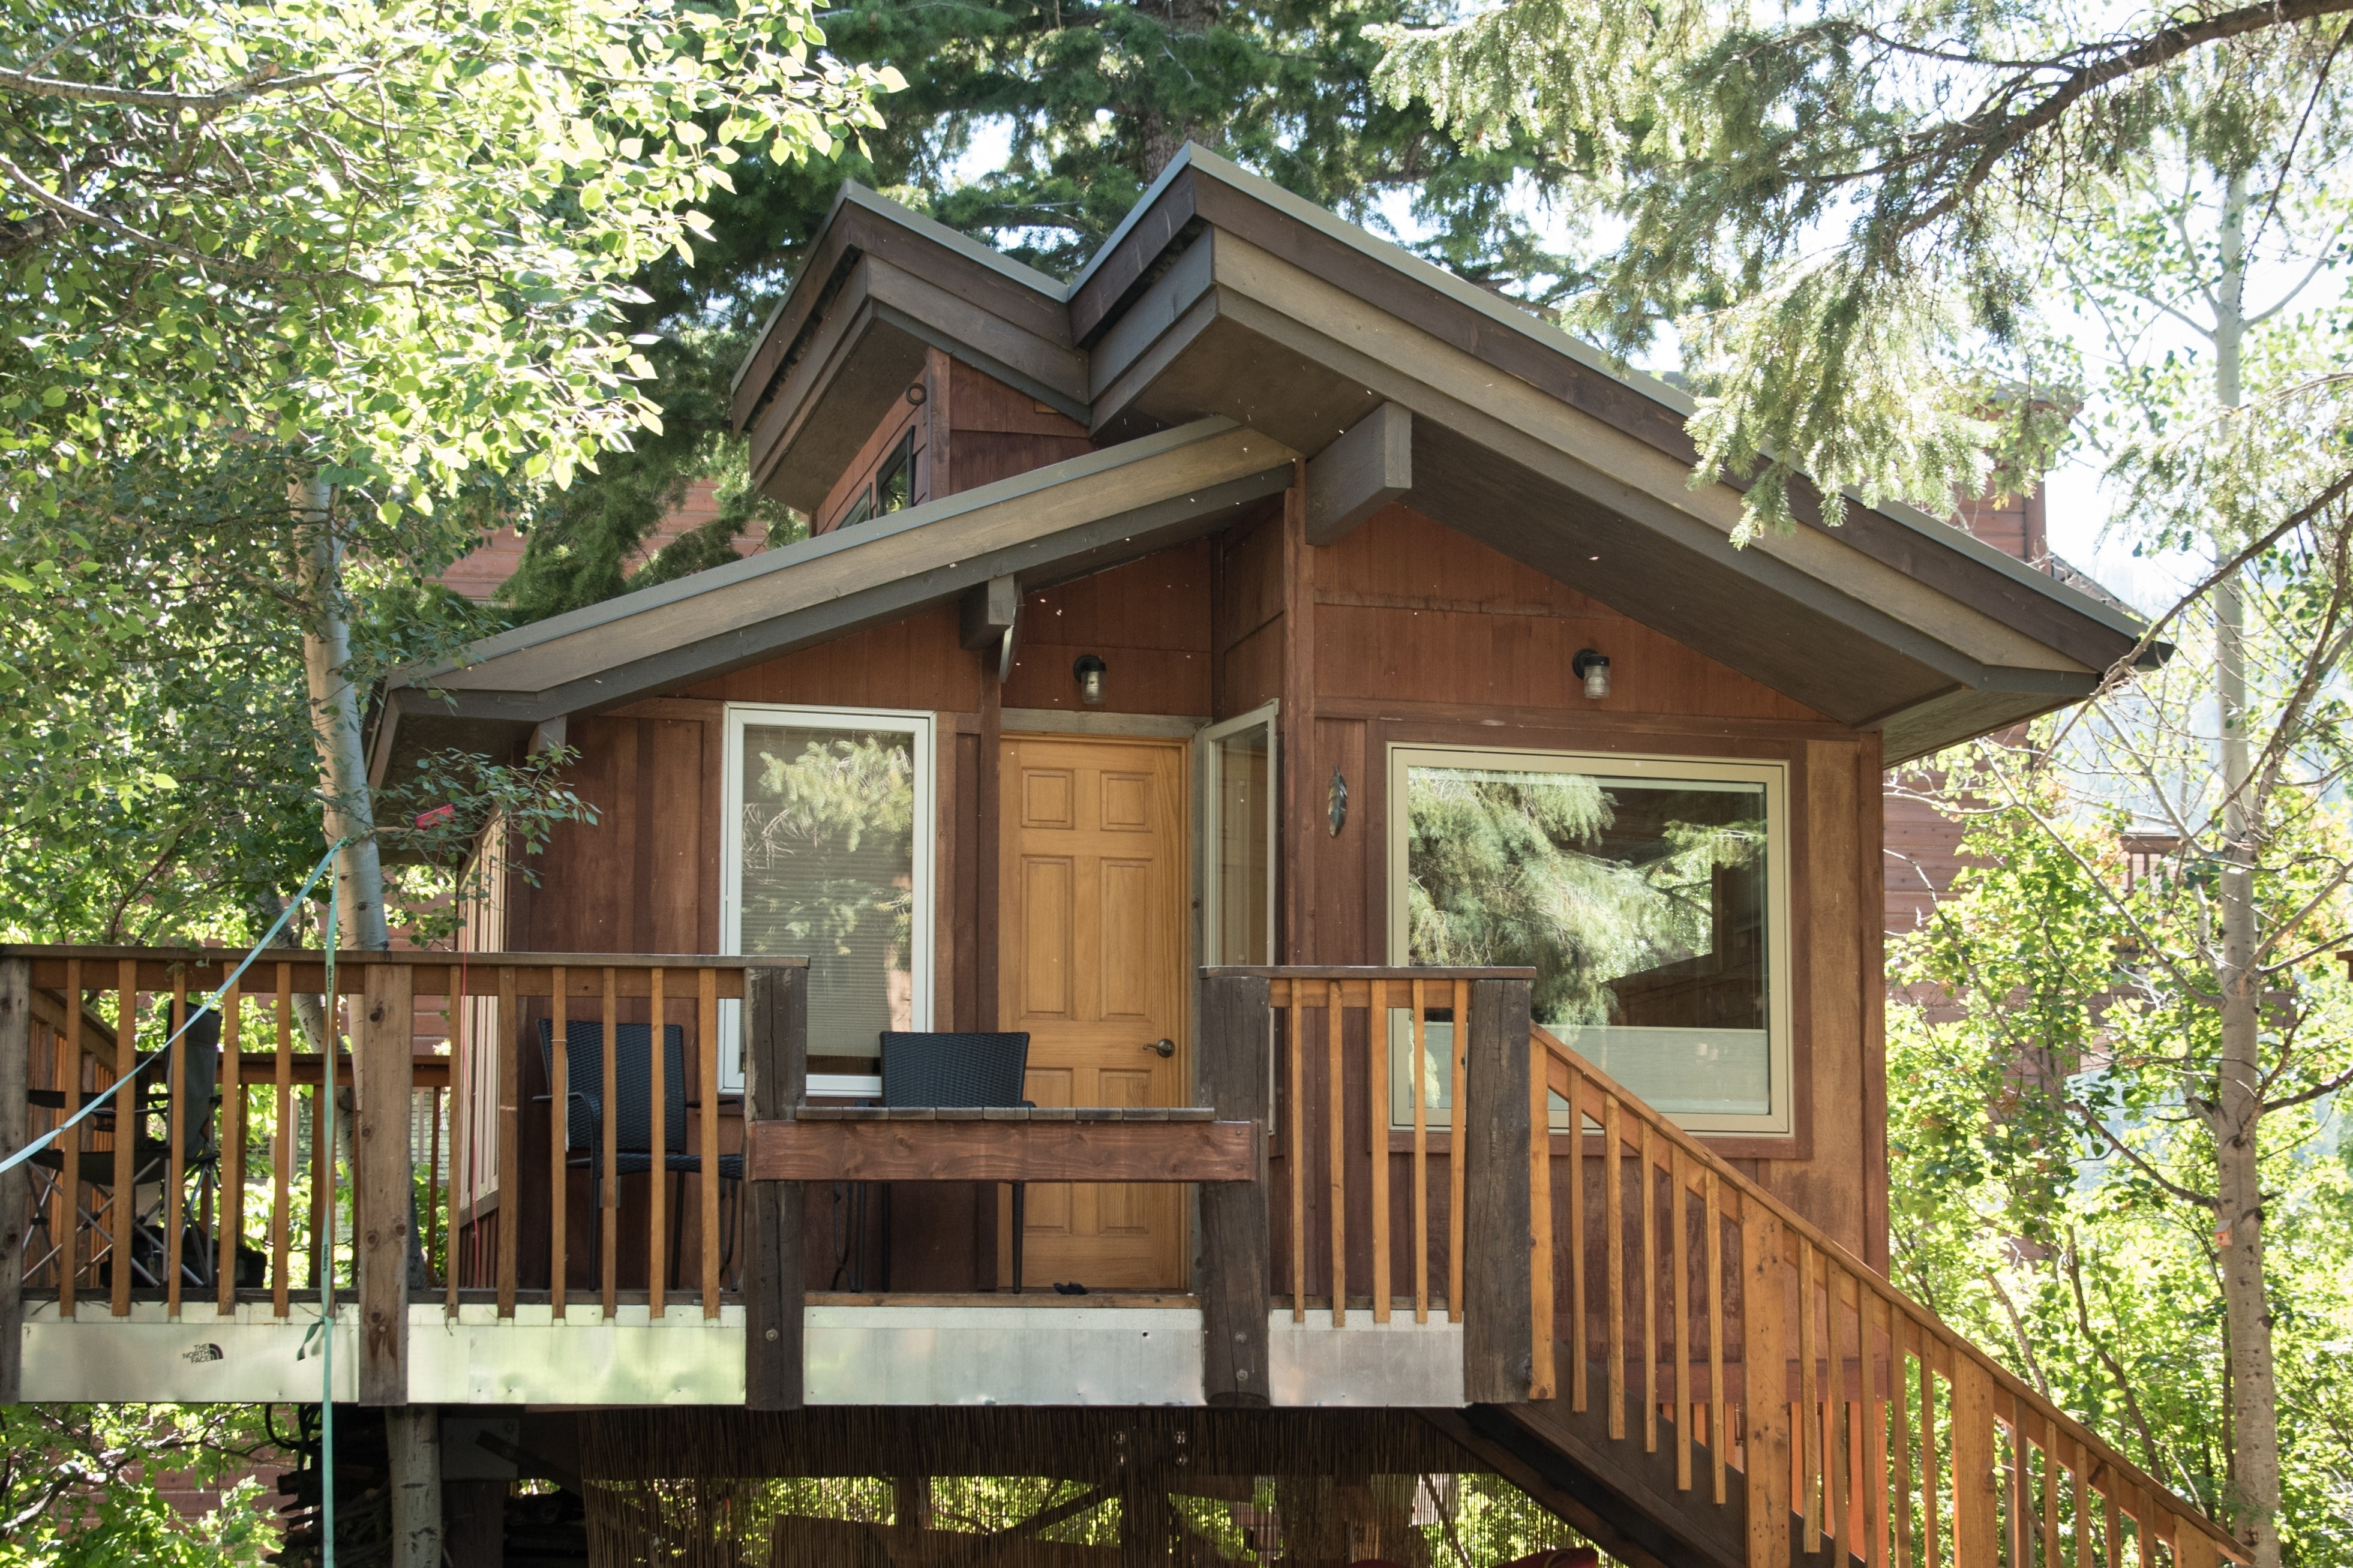 Picture of: Big Cozy Heated Tree House In Unbeatable Location Treehouses For Rent In Ketchum Idaho United States